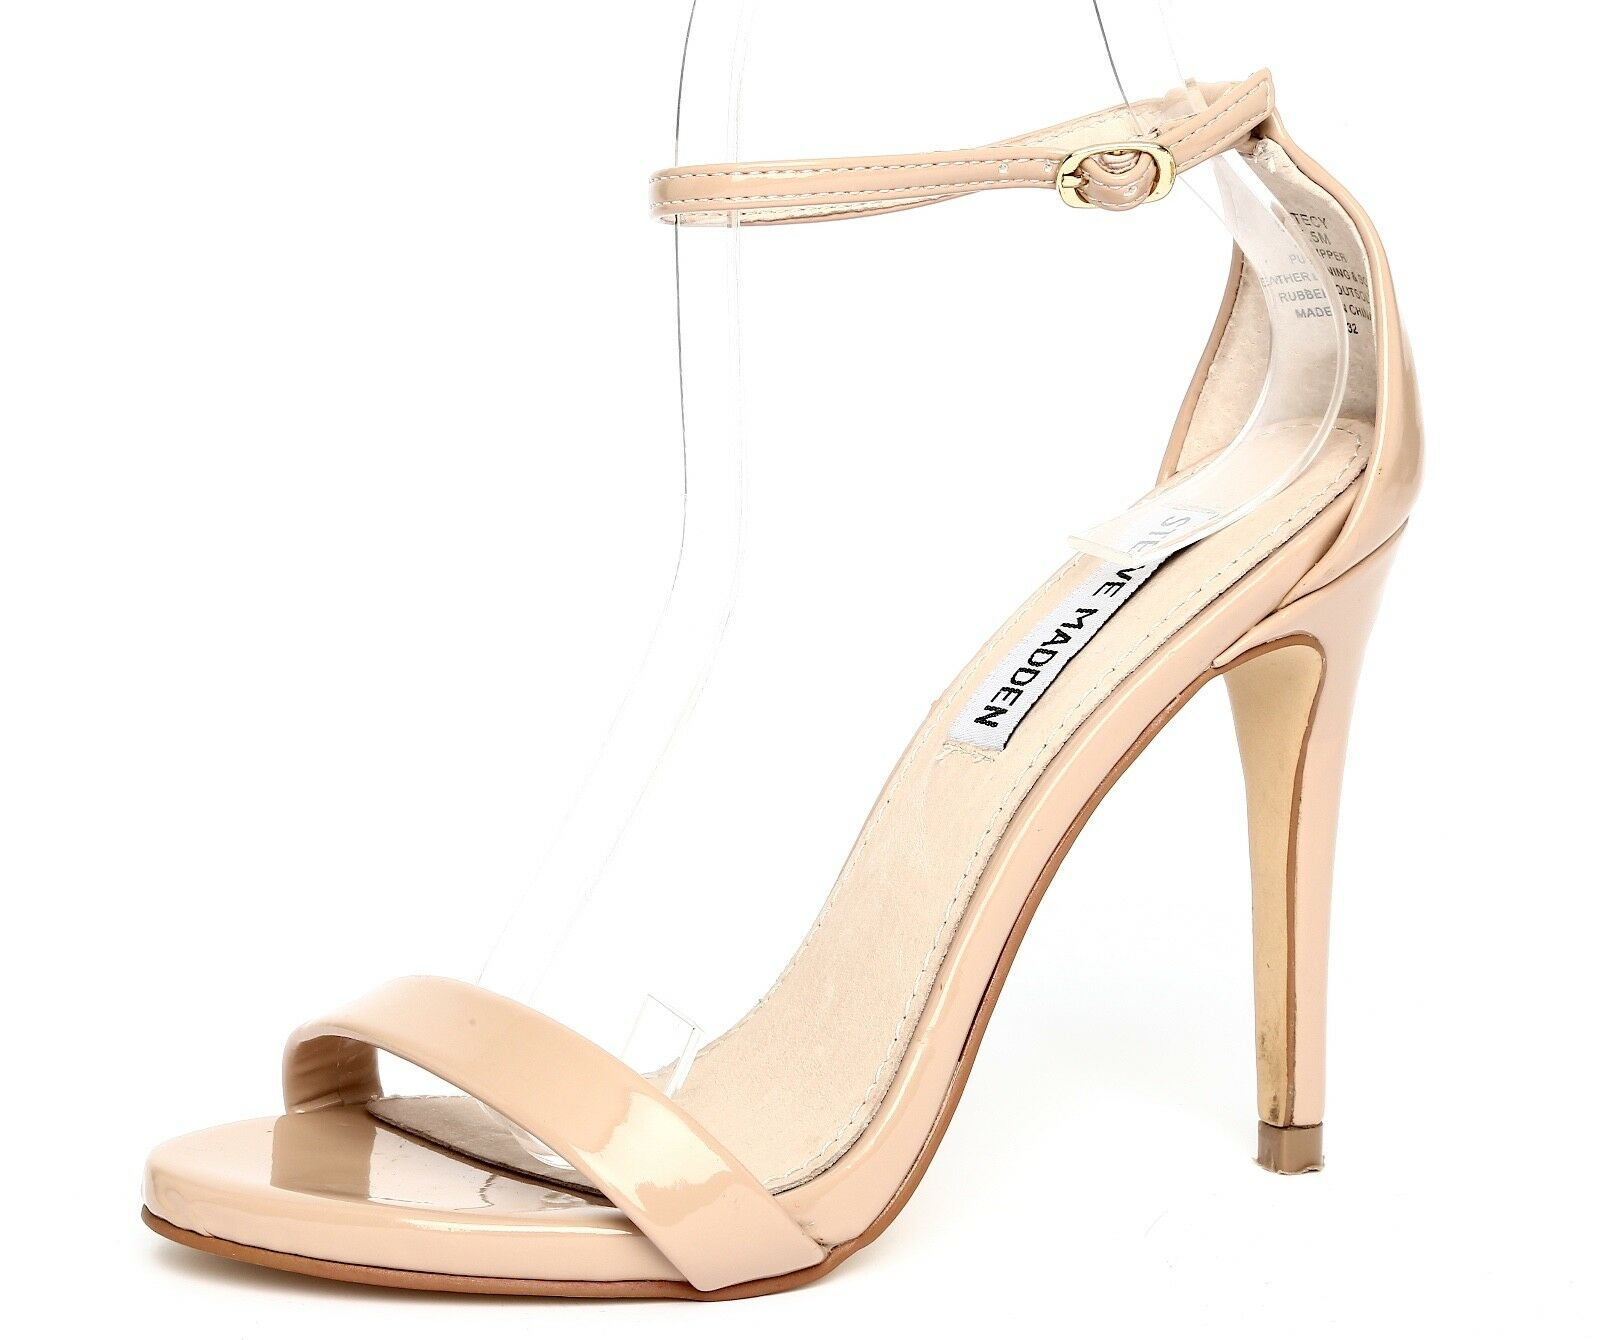 Steve Madden Stecy Patent Leather Nude Ankle Strap Sandal Heels Sz 5.5M 1851